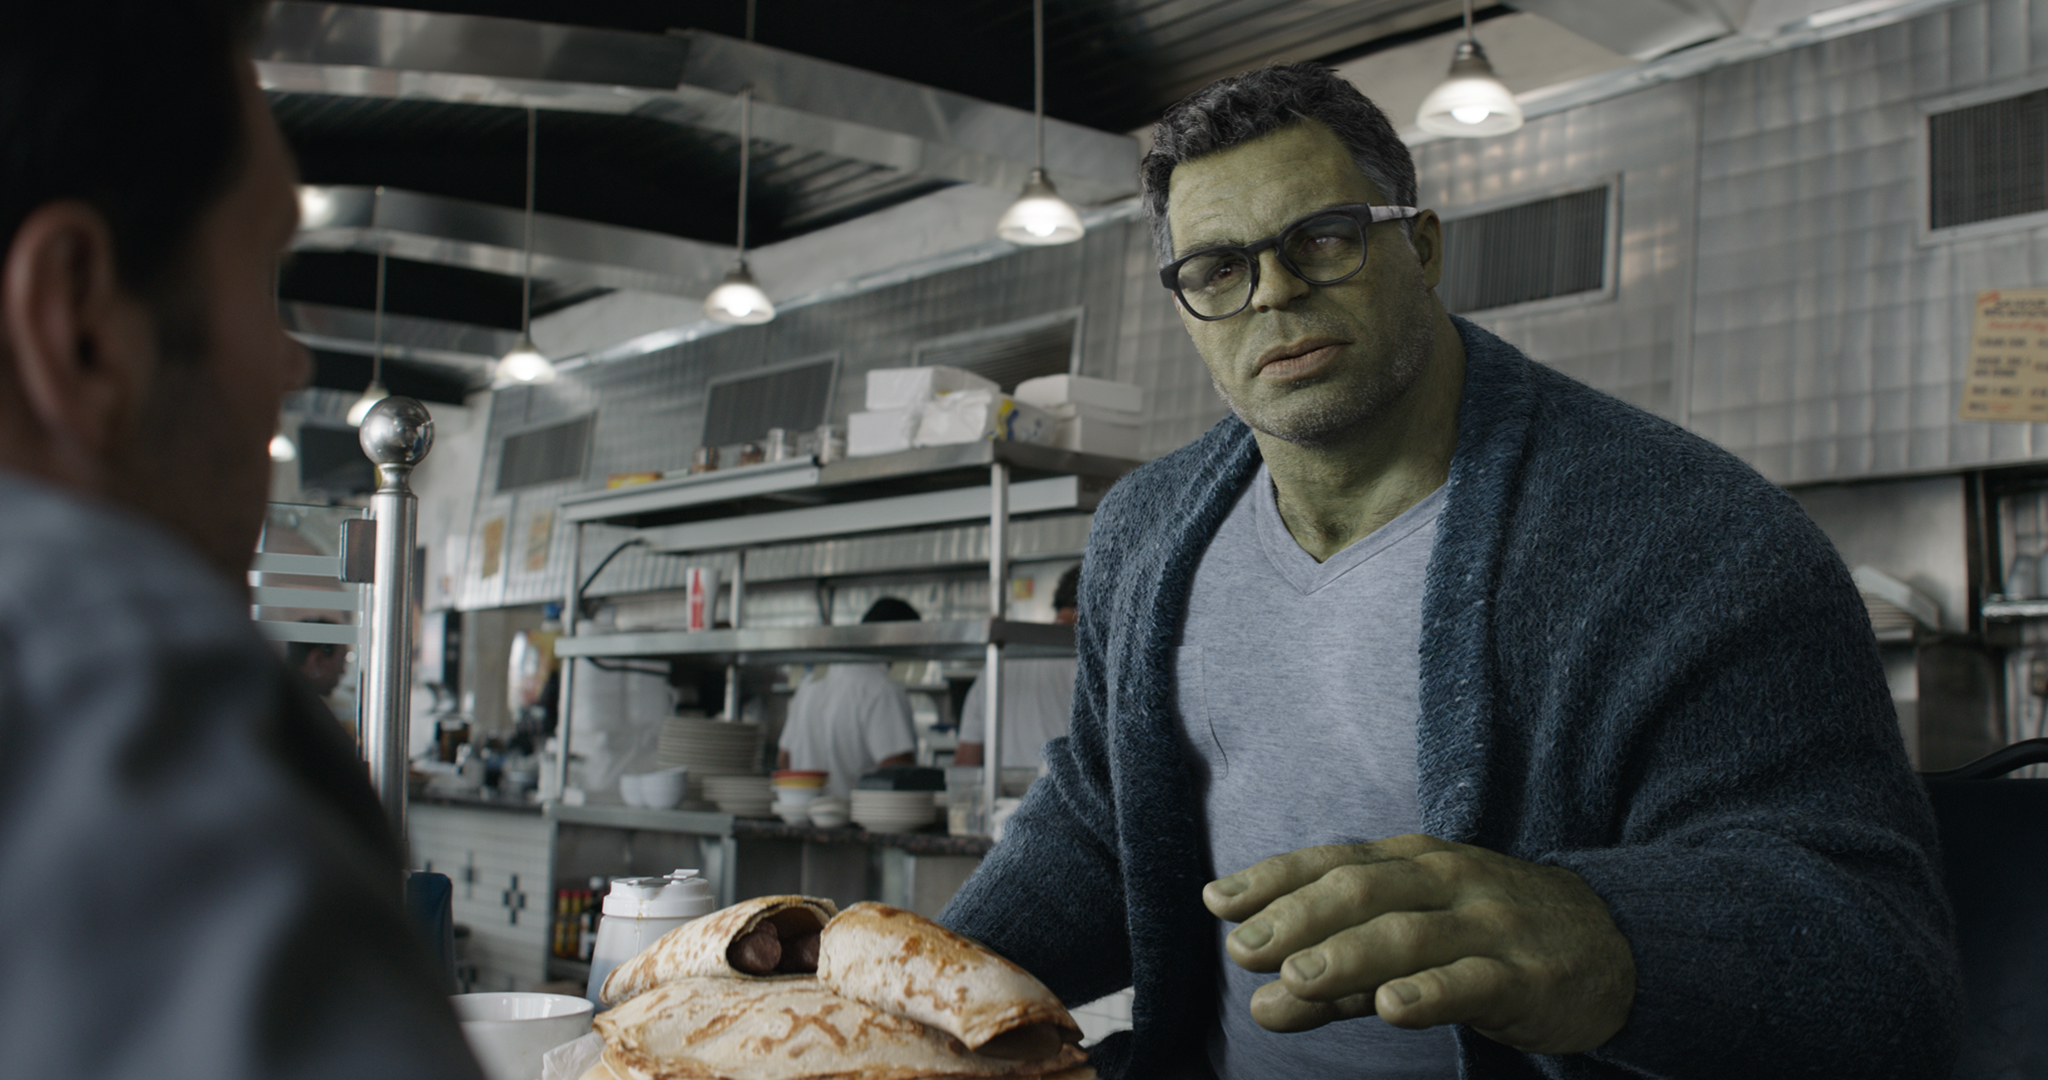 Avengers: Endgame writers reveal their original Smart Hulk plans at SDCC